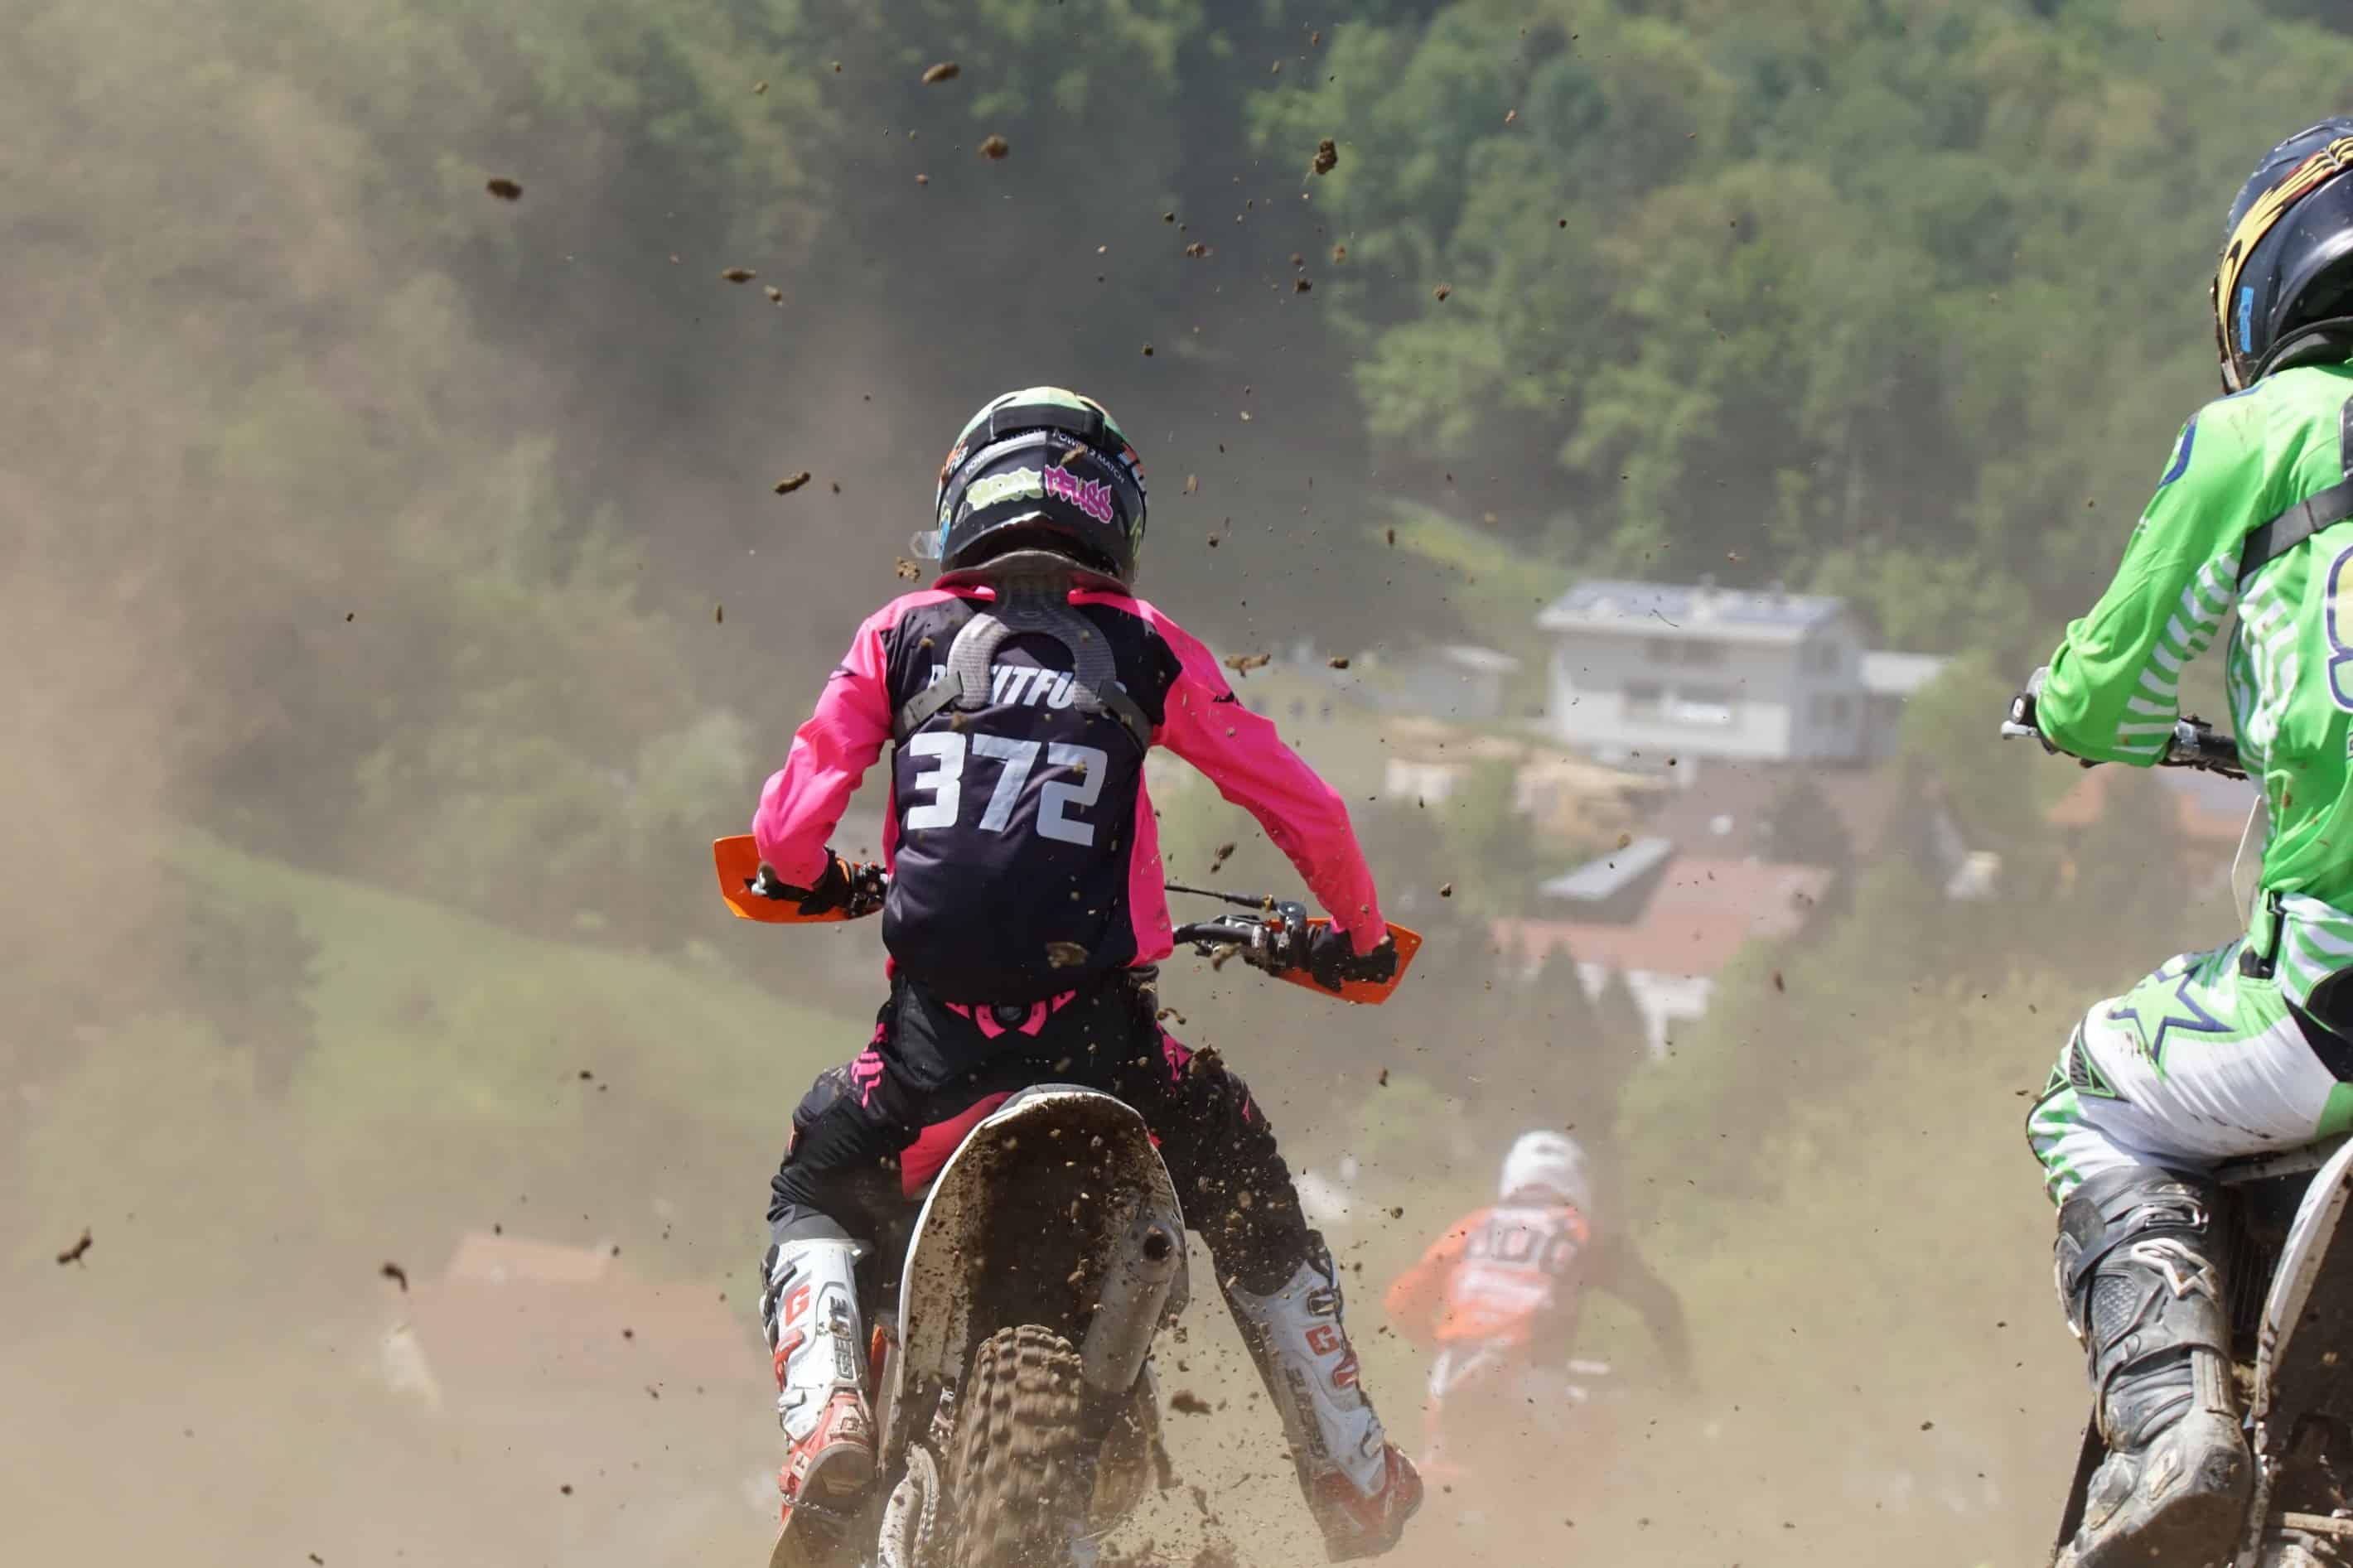 DSC 251_Moto Cross Sittendorf Teil1 am 29.04.2018